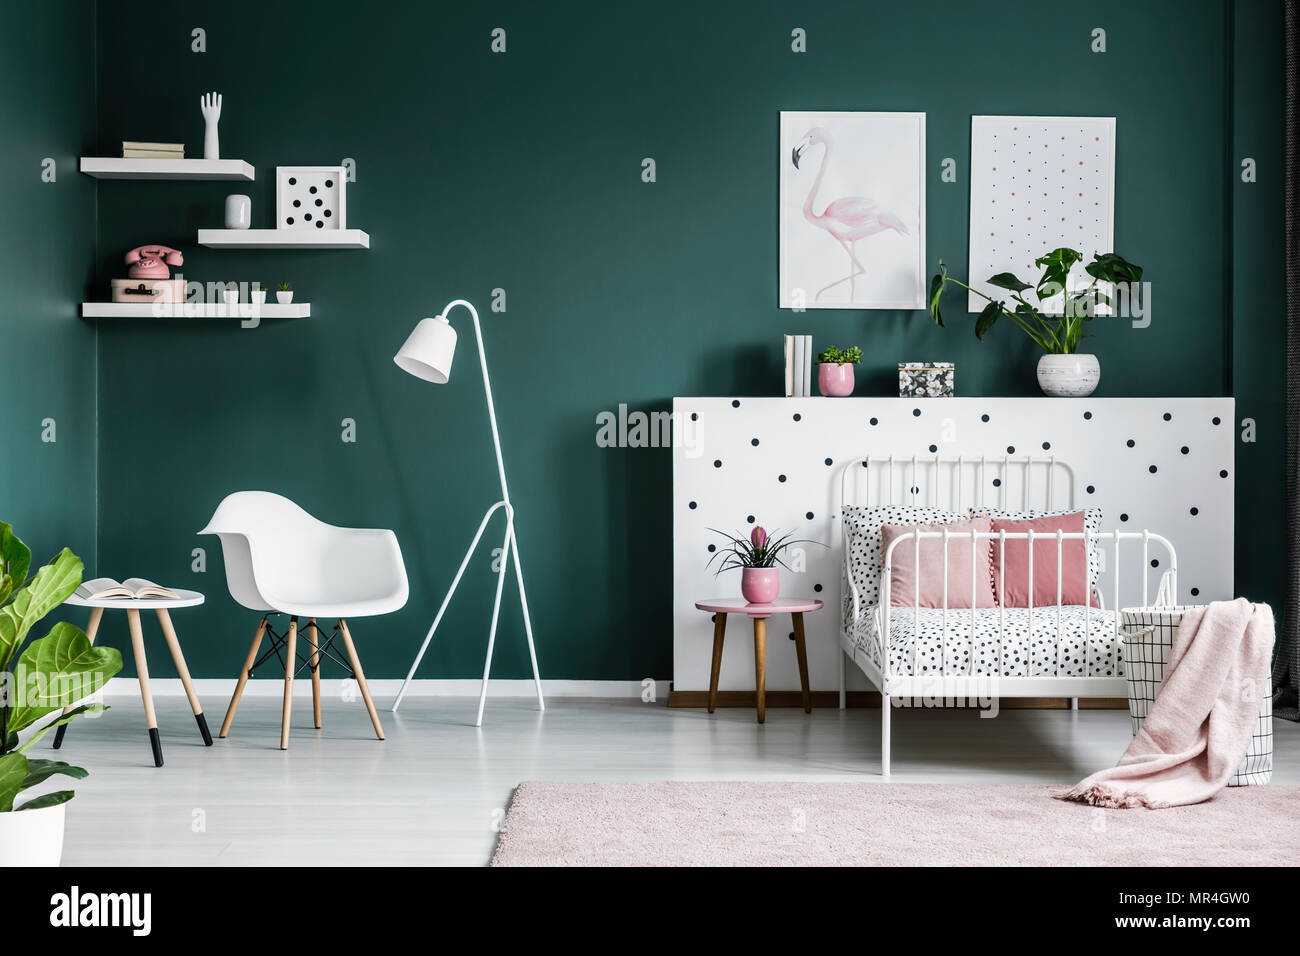 Pastel pink decorations in a scandi bedroom interior for a teenage ...